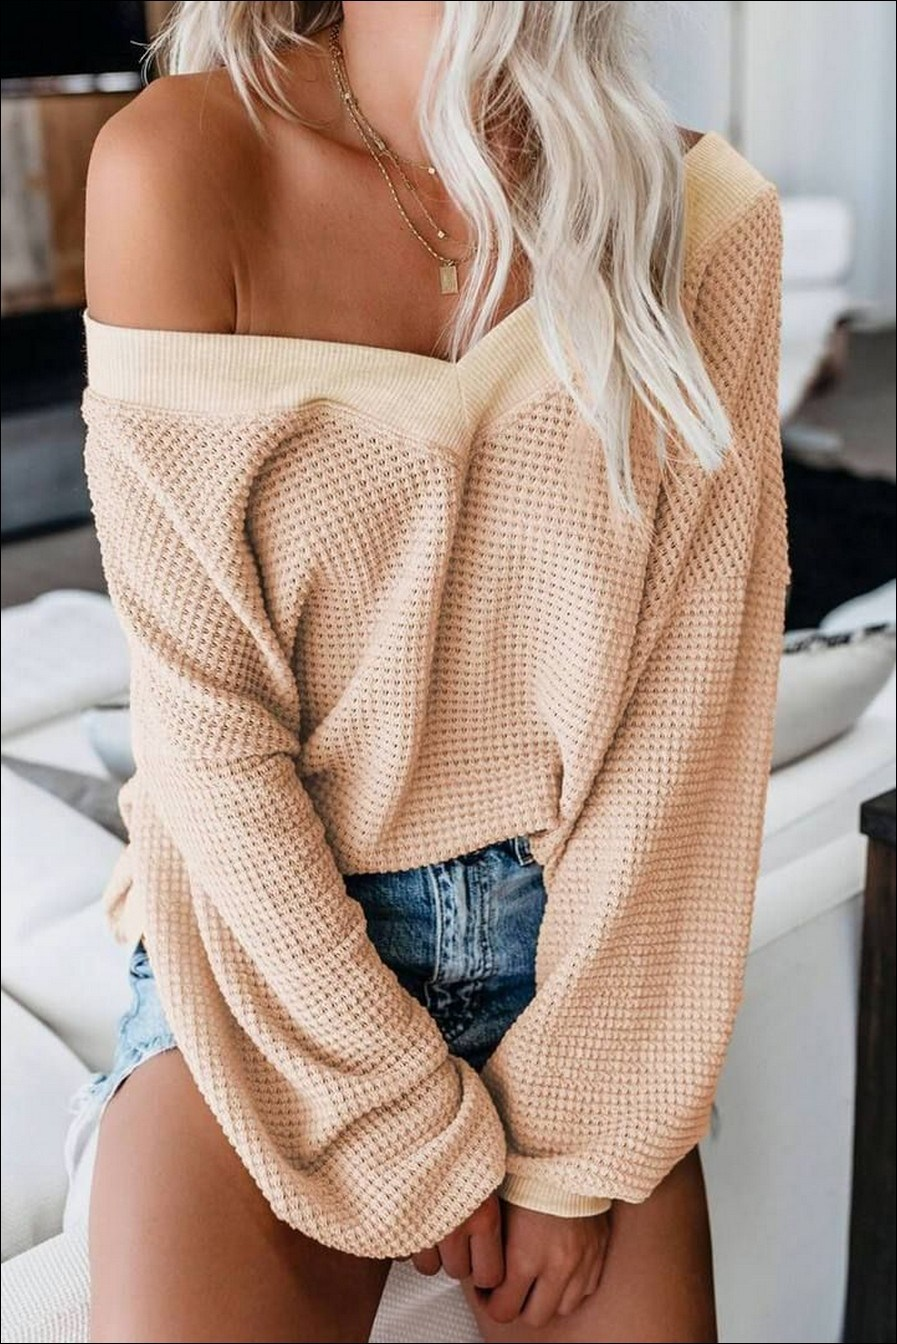 50+ checkered vans casual autumn outfit, winter outfit, style, outfit inspiration 15